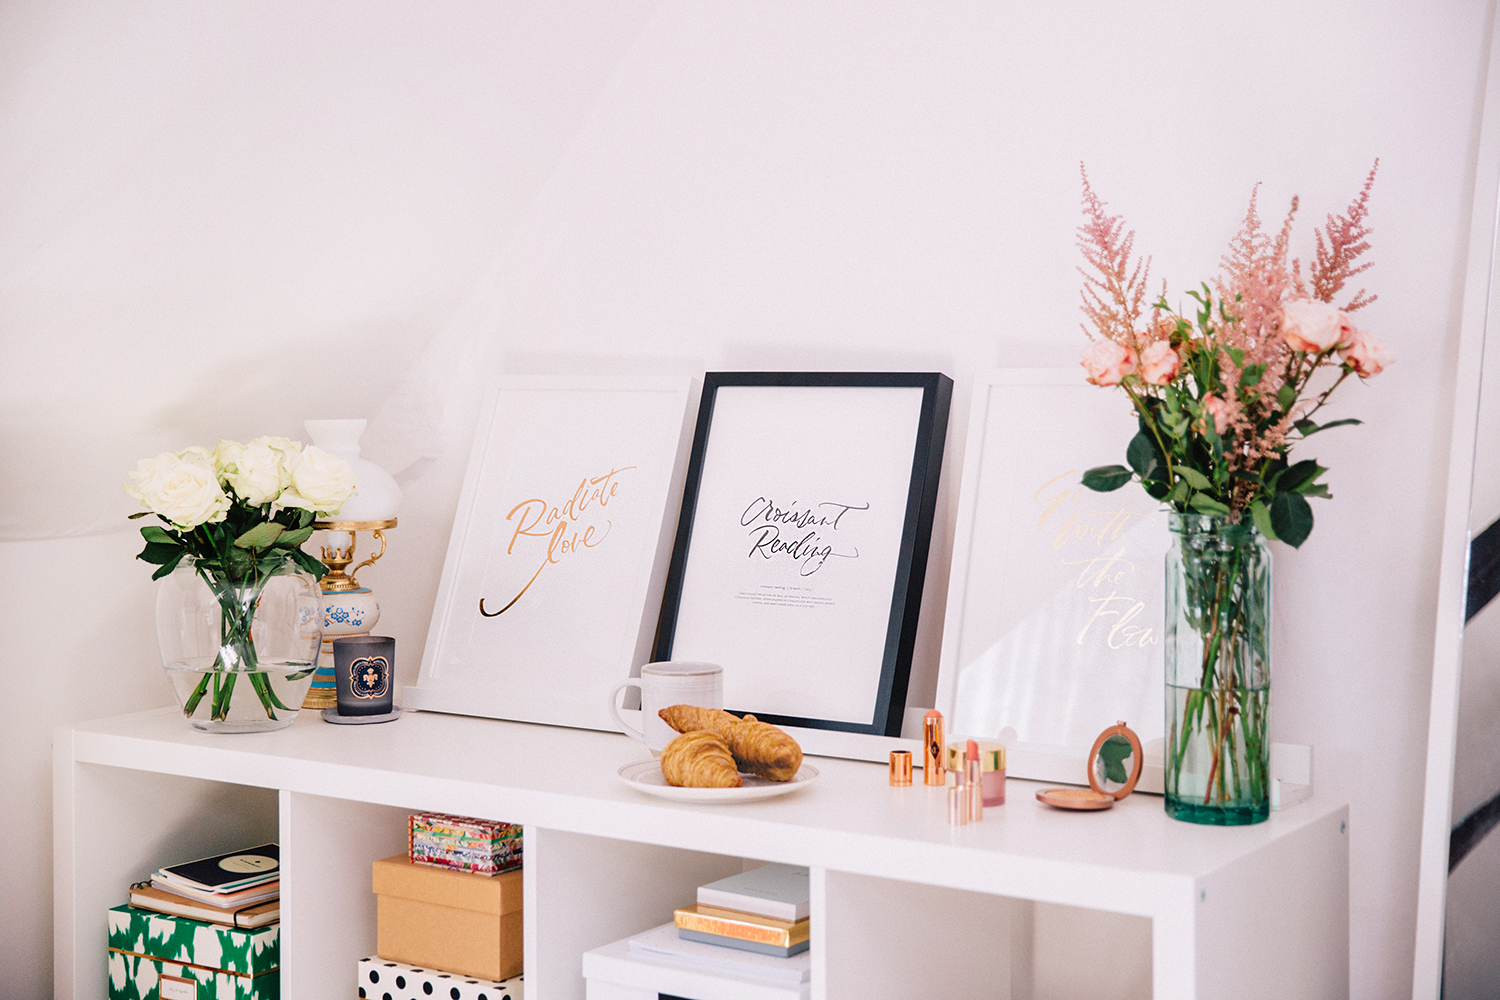 Printed using the finest traditional letterpress technique, the Radiate Love poster series is a collection of inspirational artworks to welcome into your home or work space. -